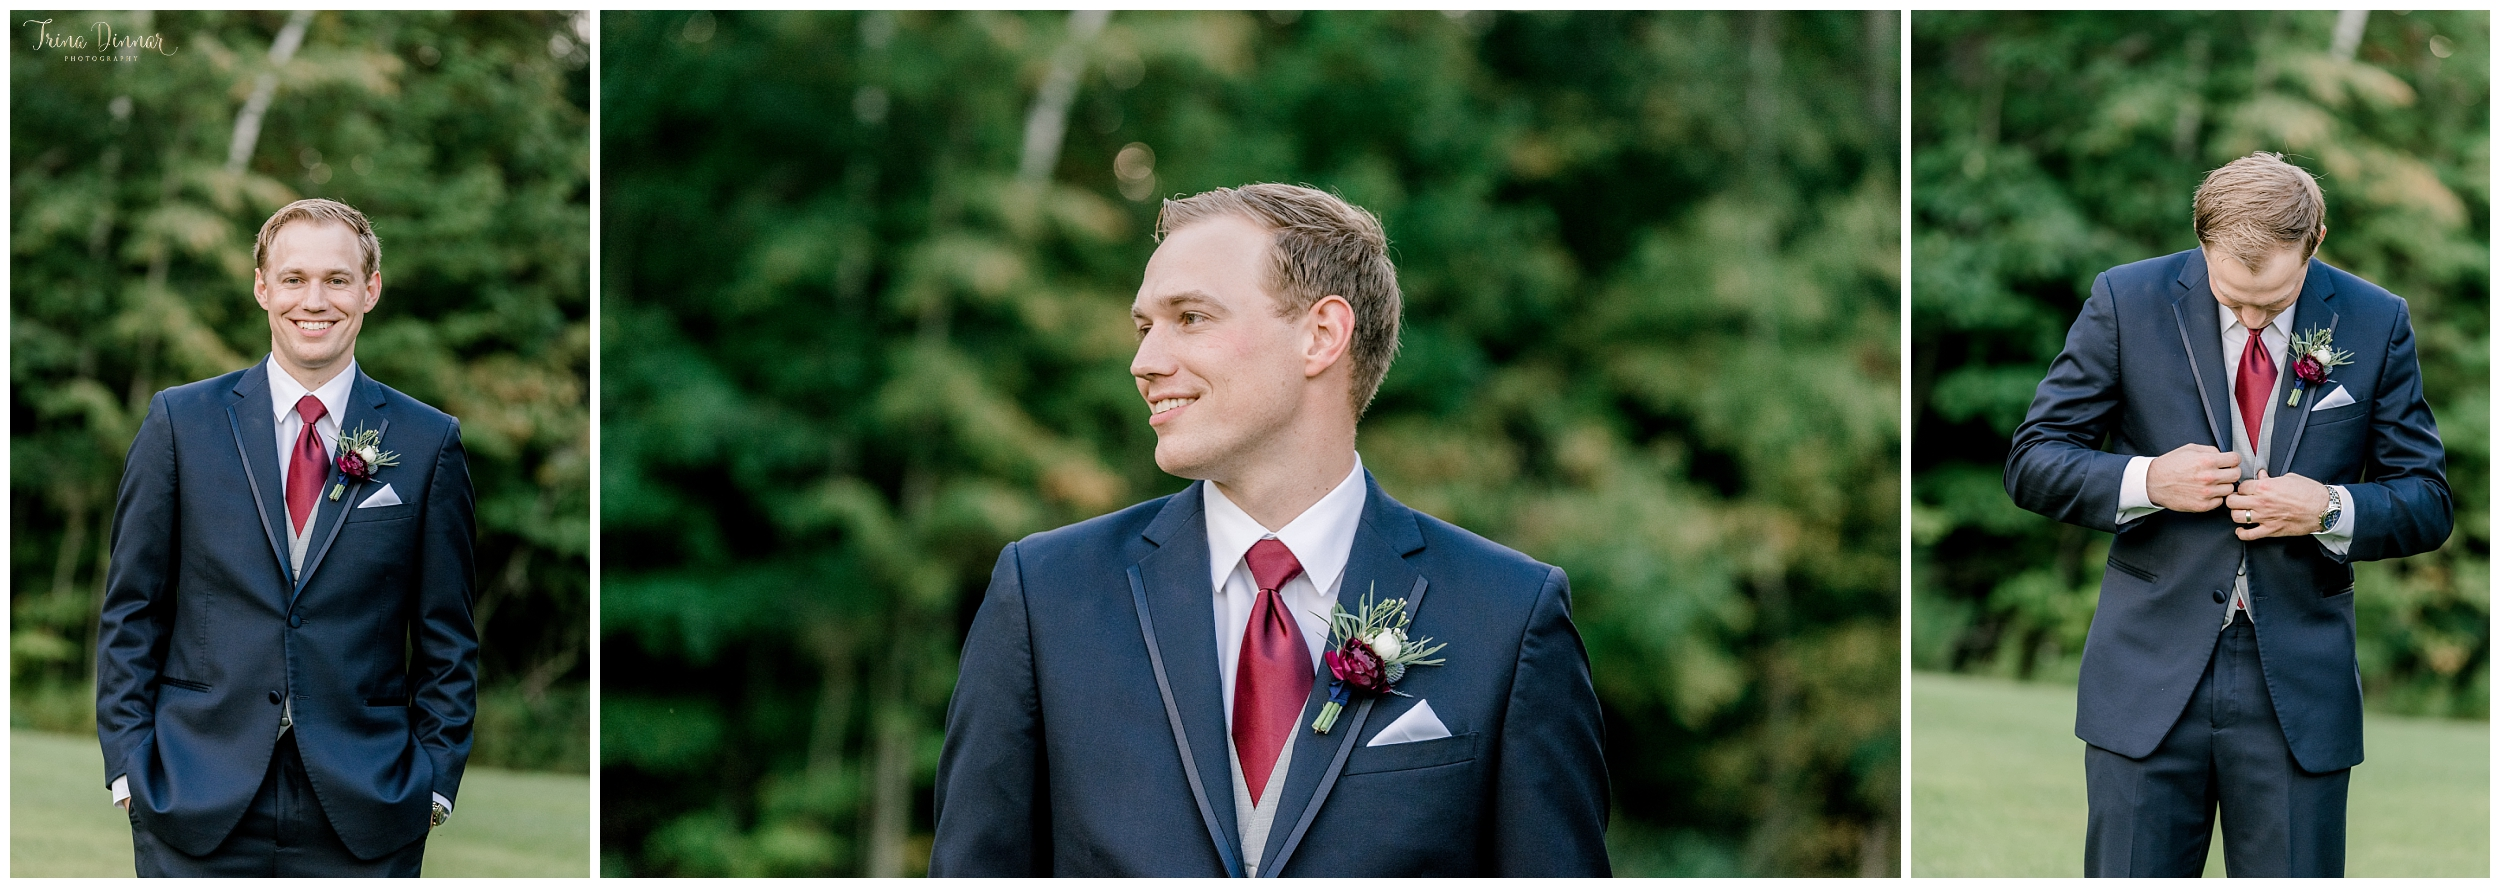 Groom portrait photography in Southern Maine